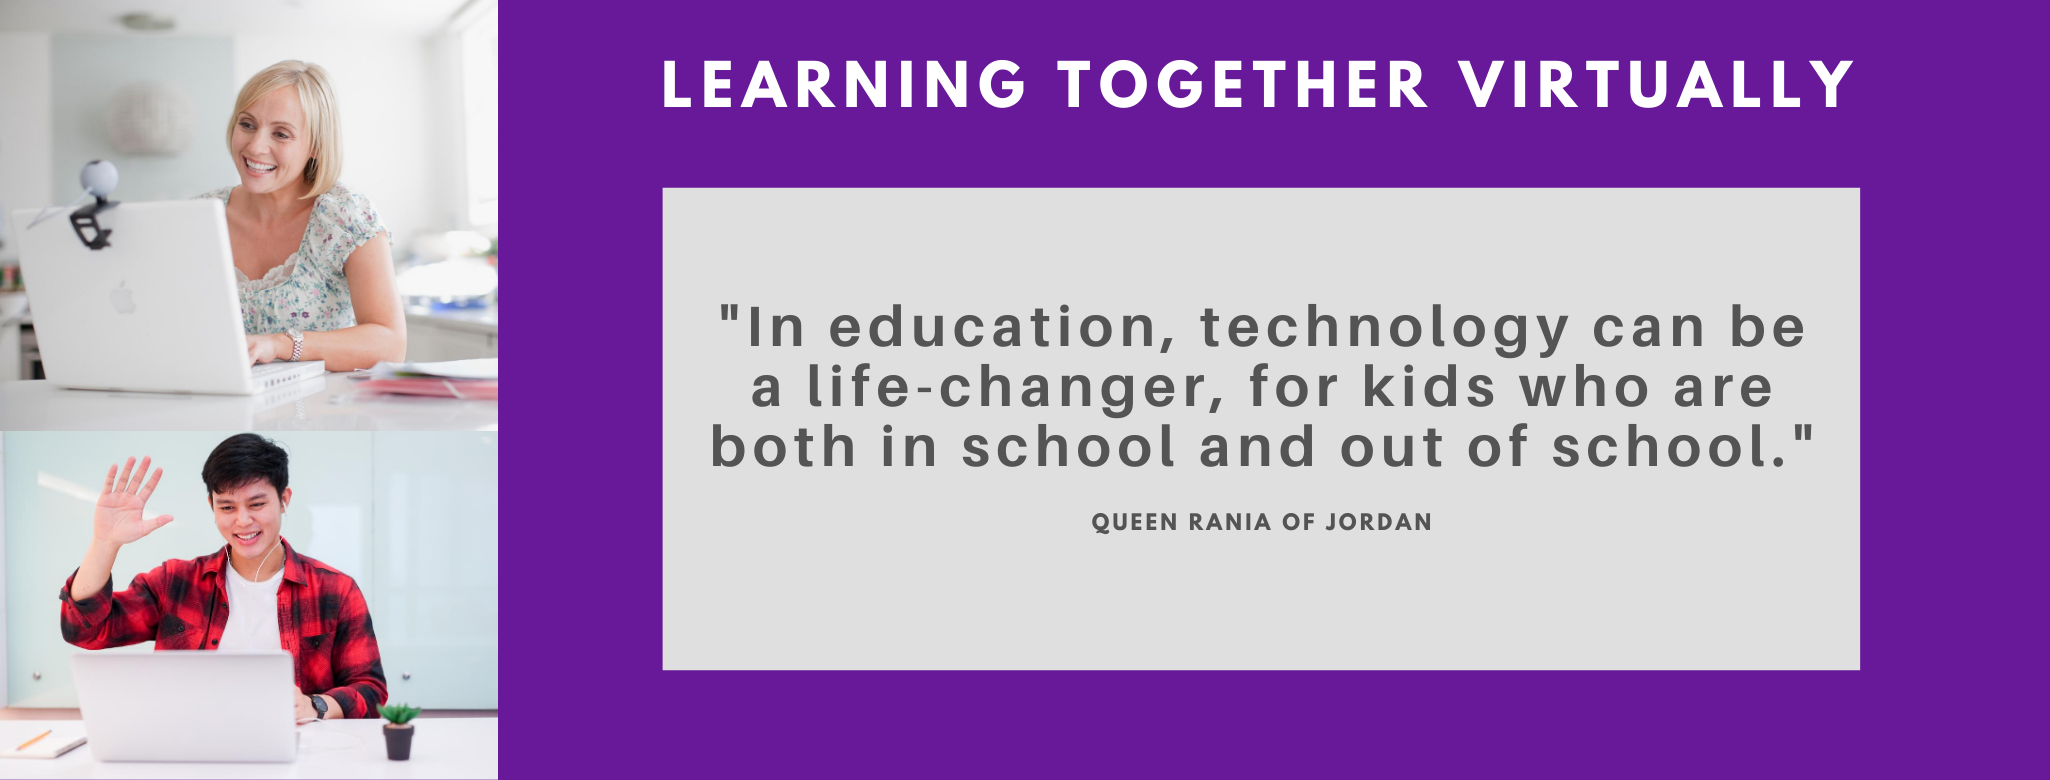 Learning Together Virtually